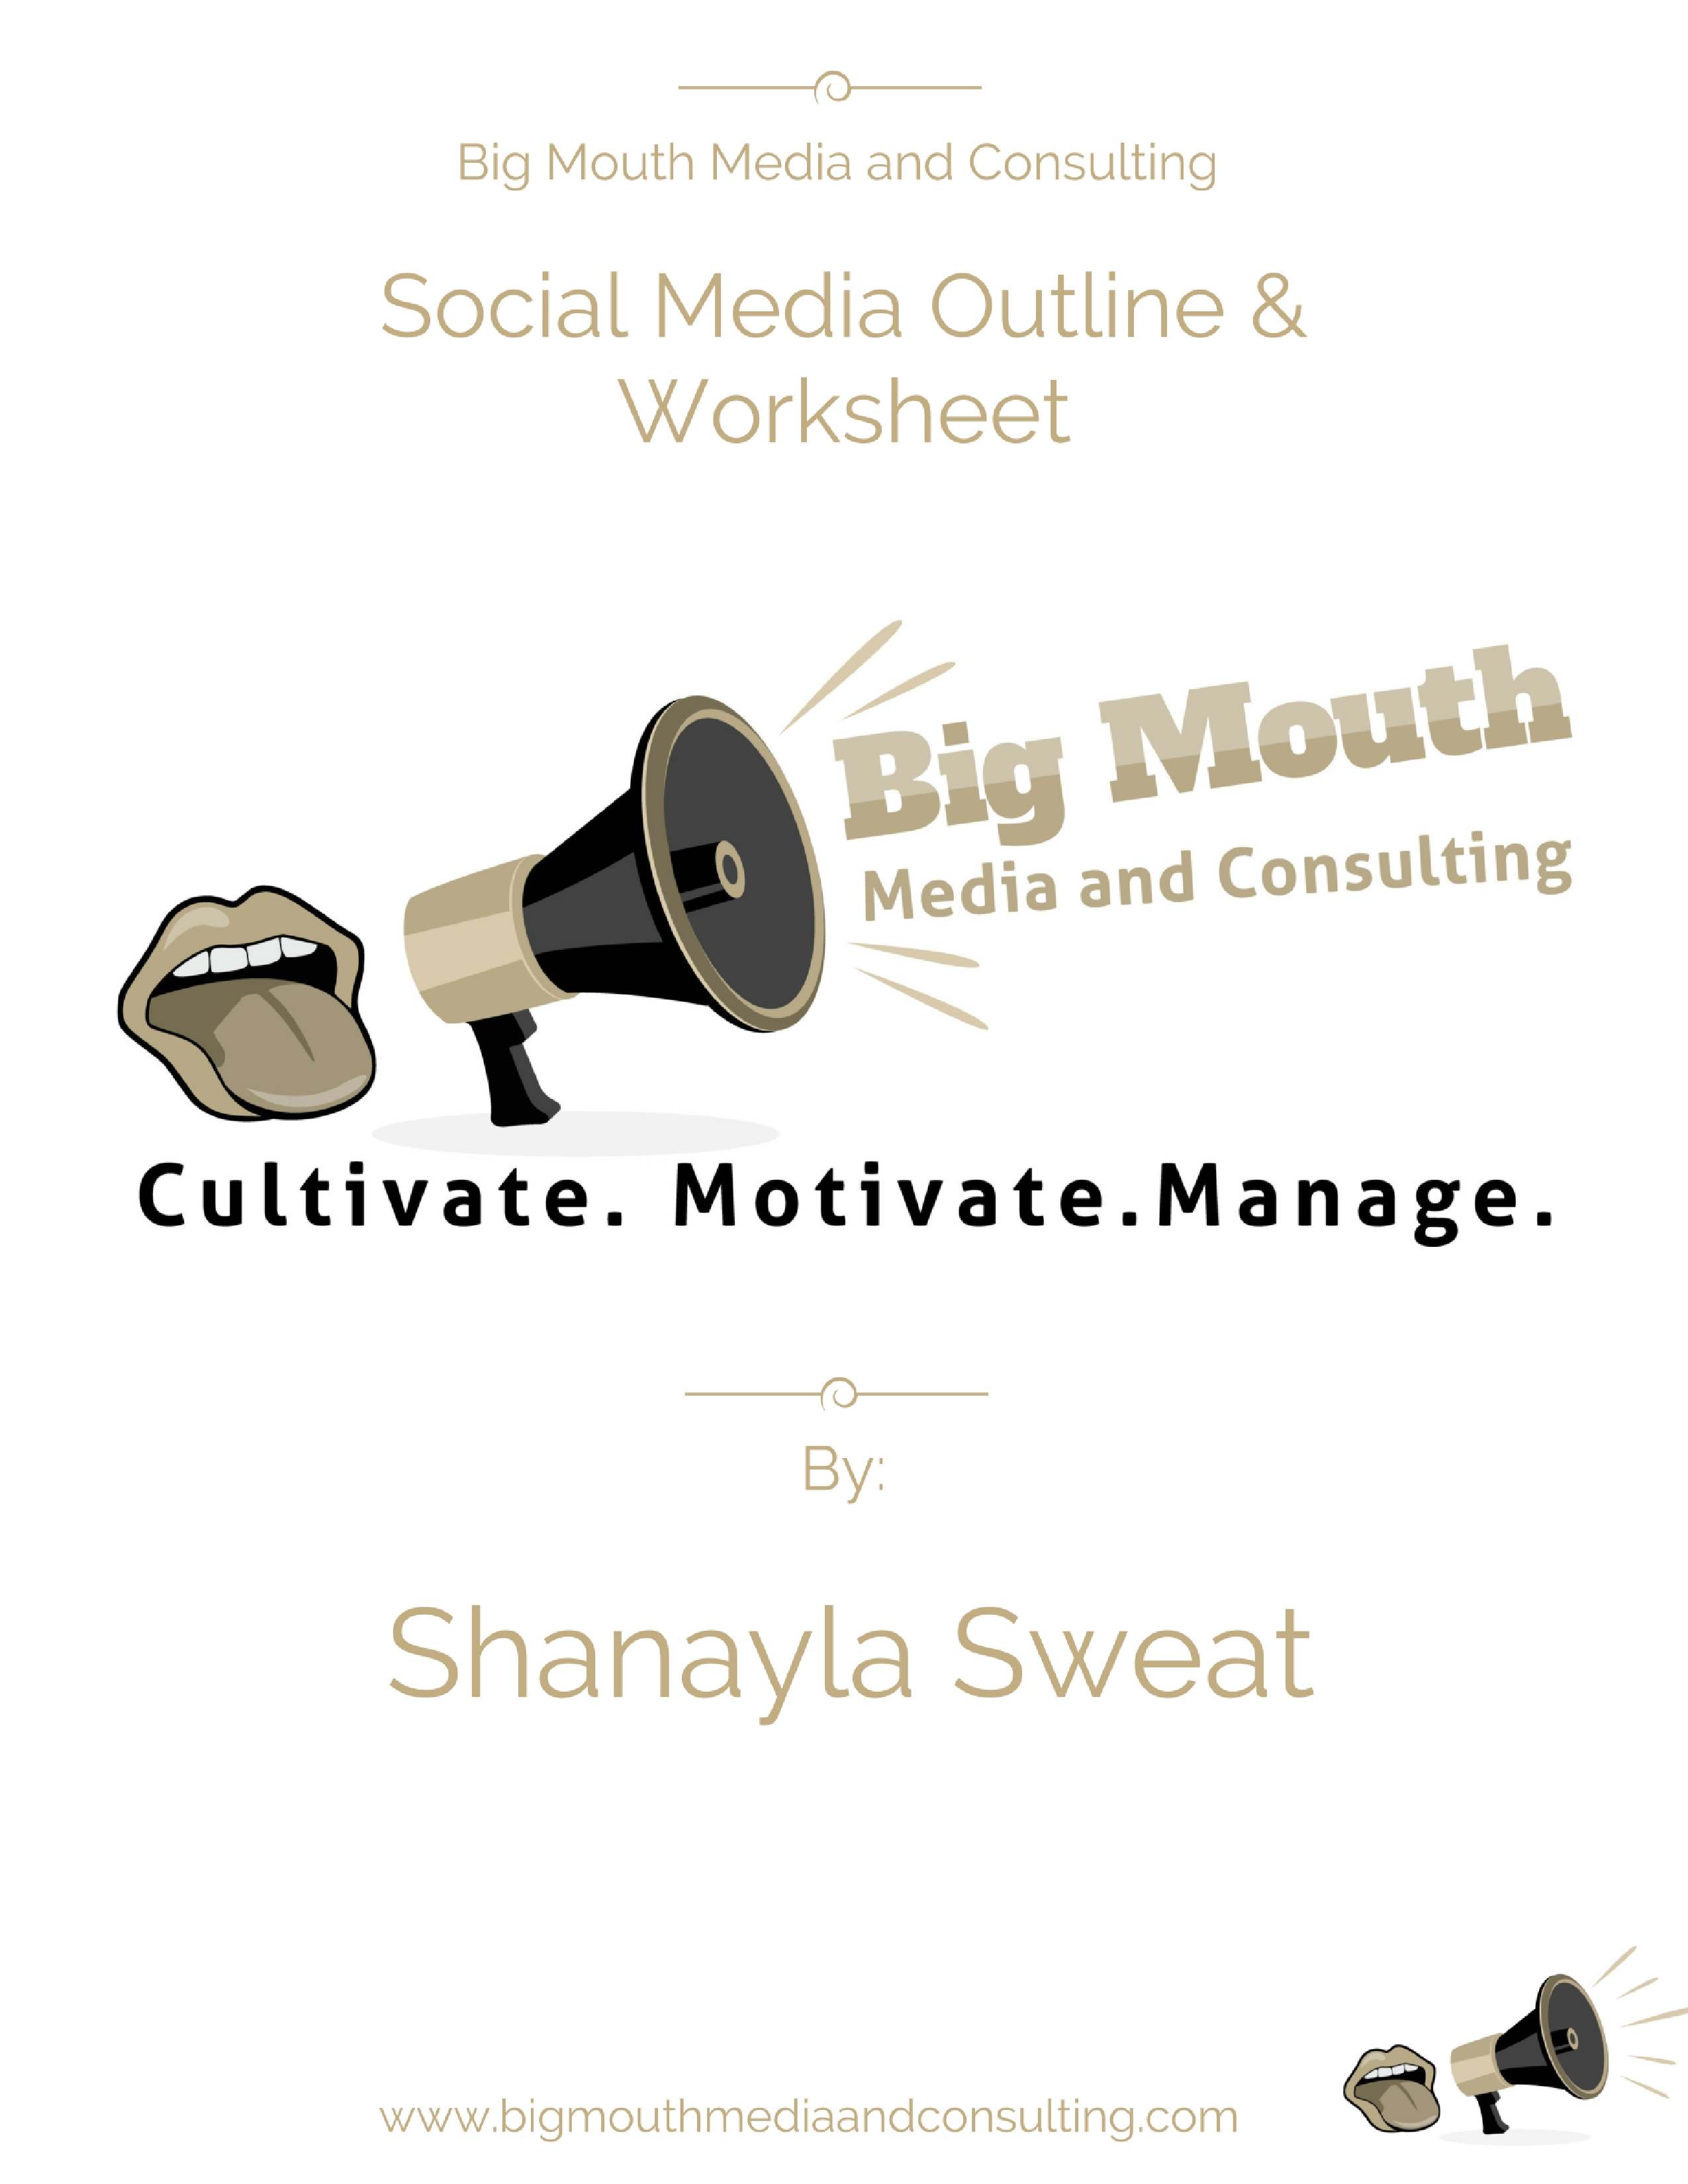 Big Mouth Social Media Outline And Worksheet